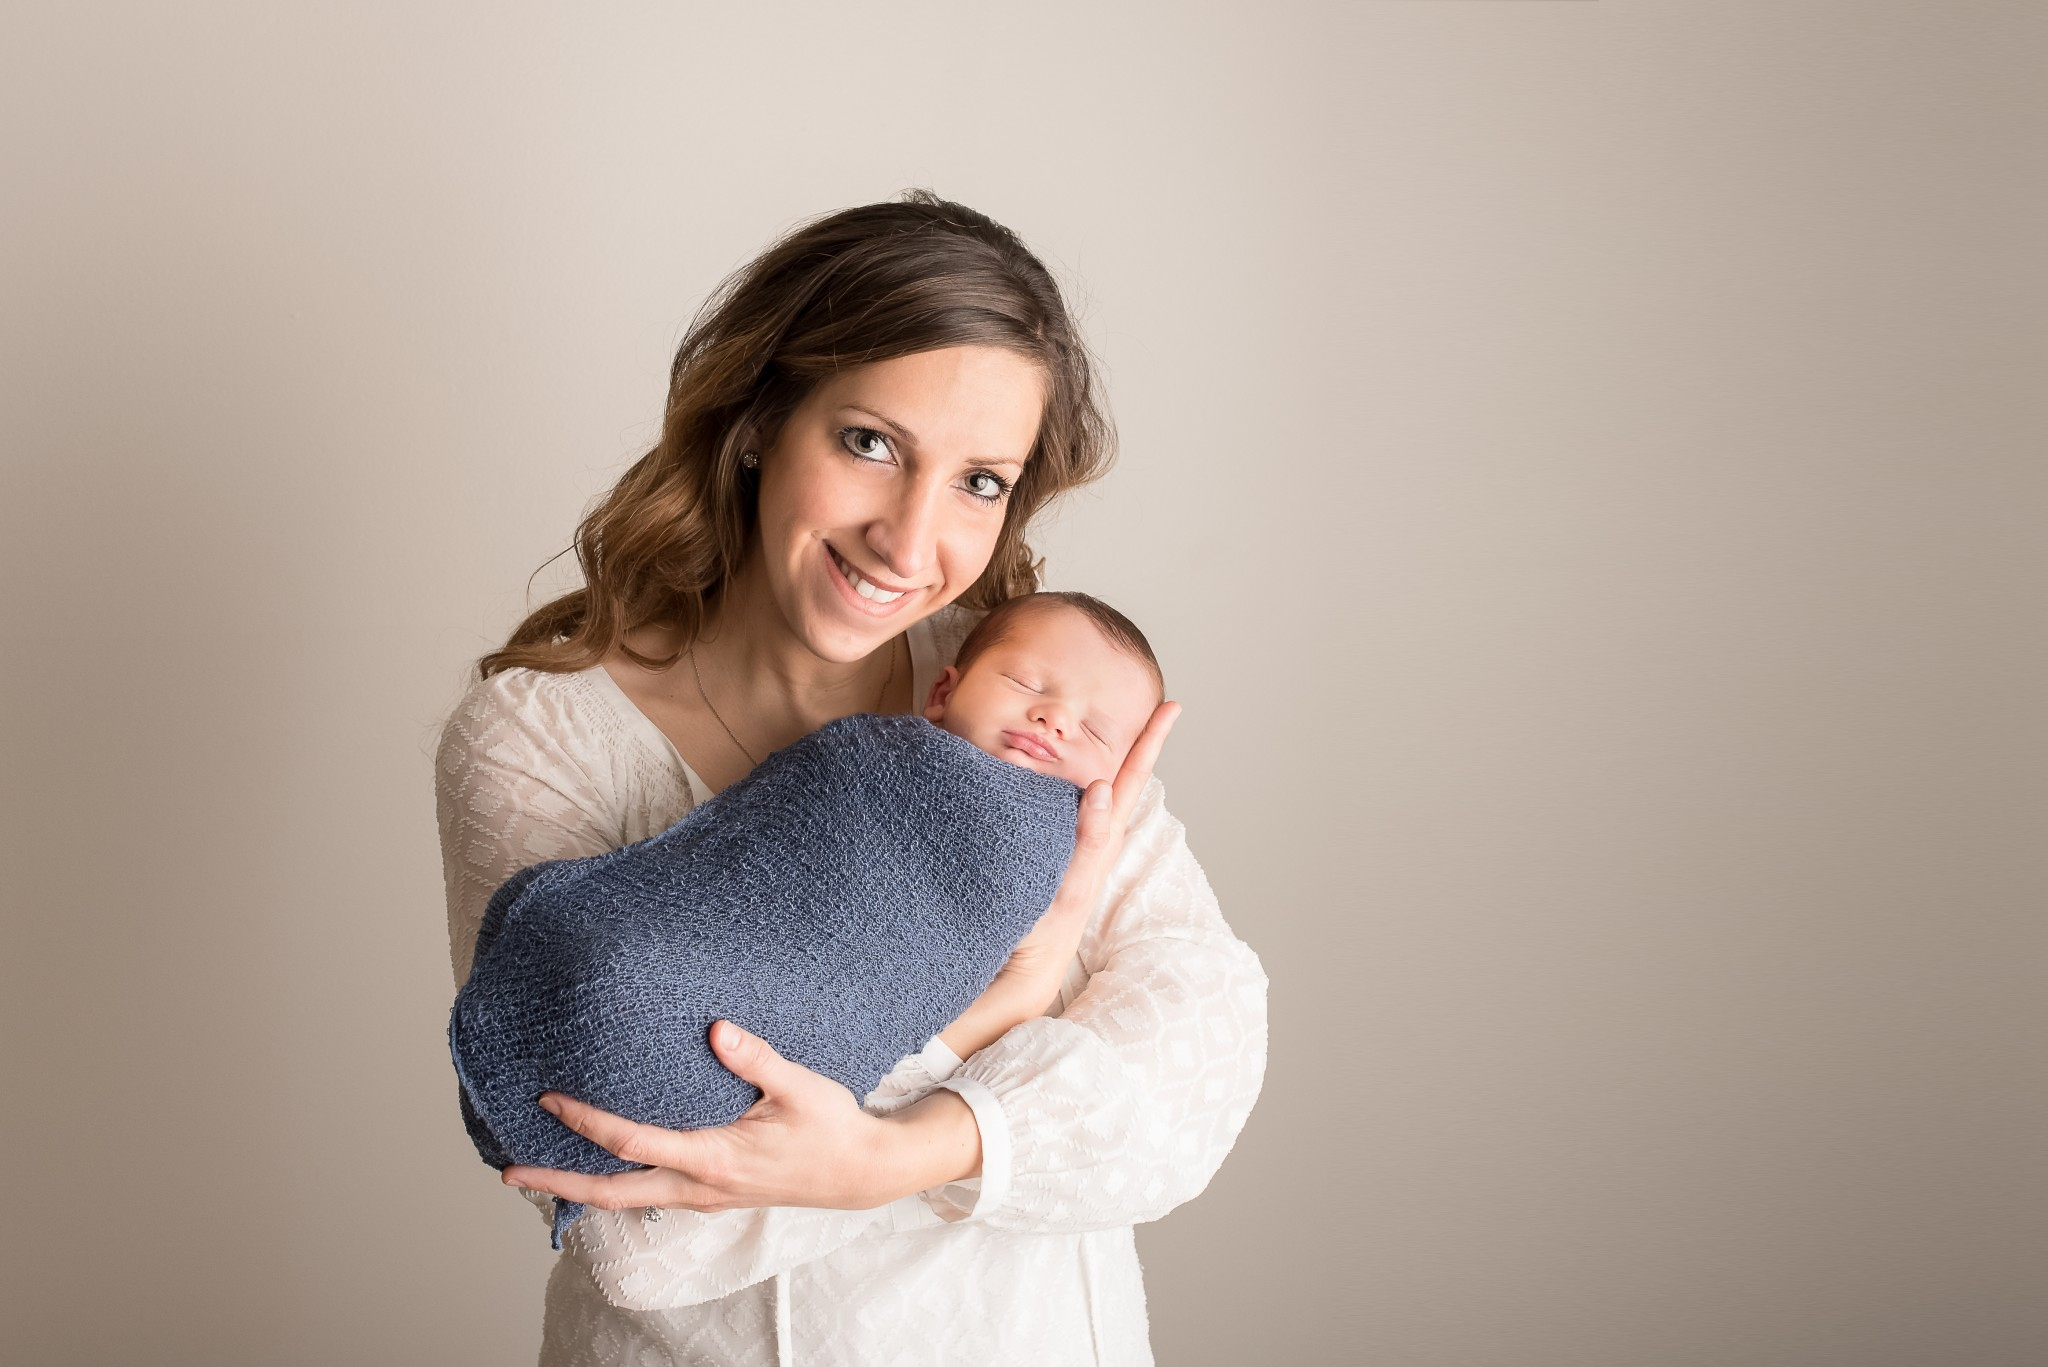 A mother proudly holds her son while wrapped in a blue swaddle during their newborn portrait photography session in Pittsburgh, PA